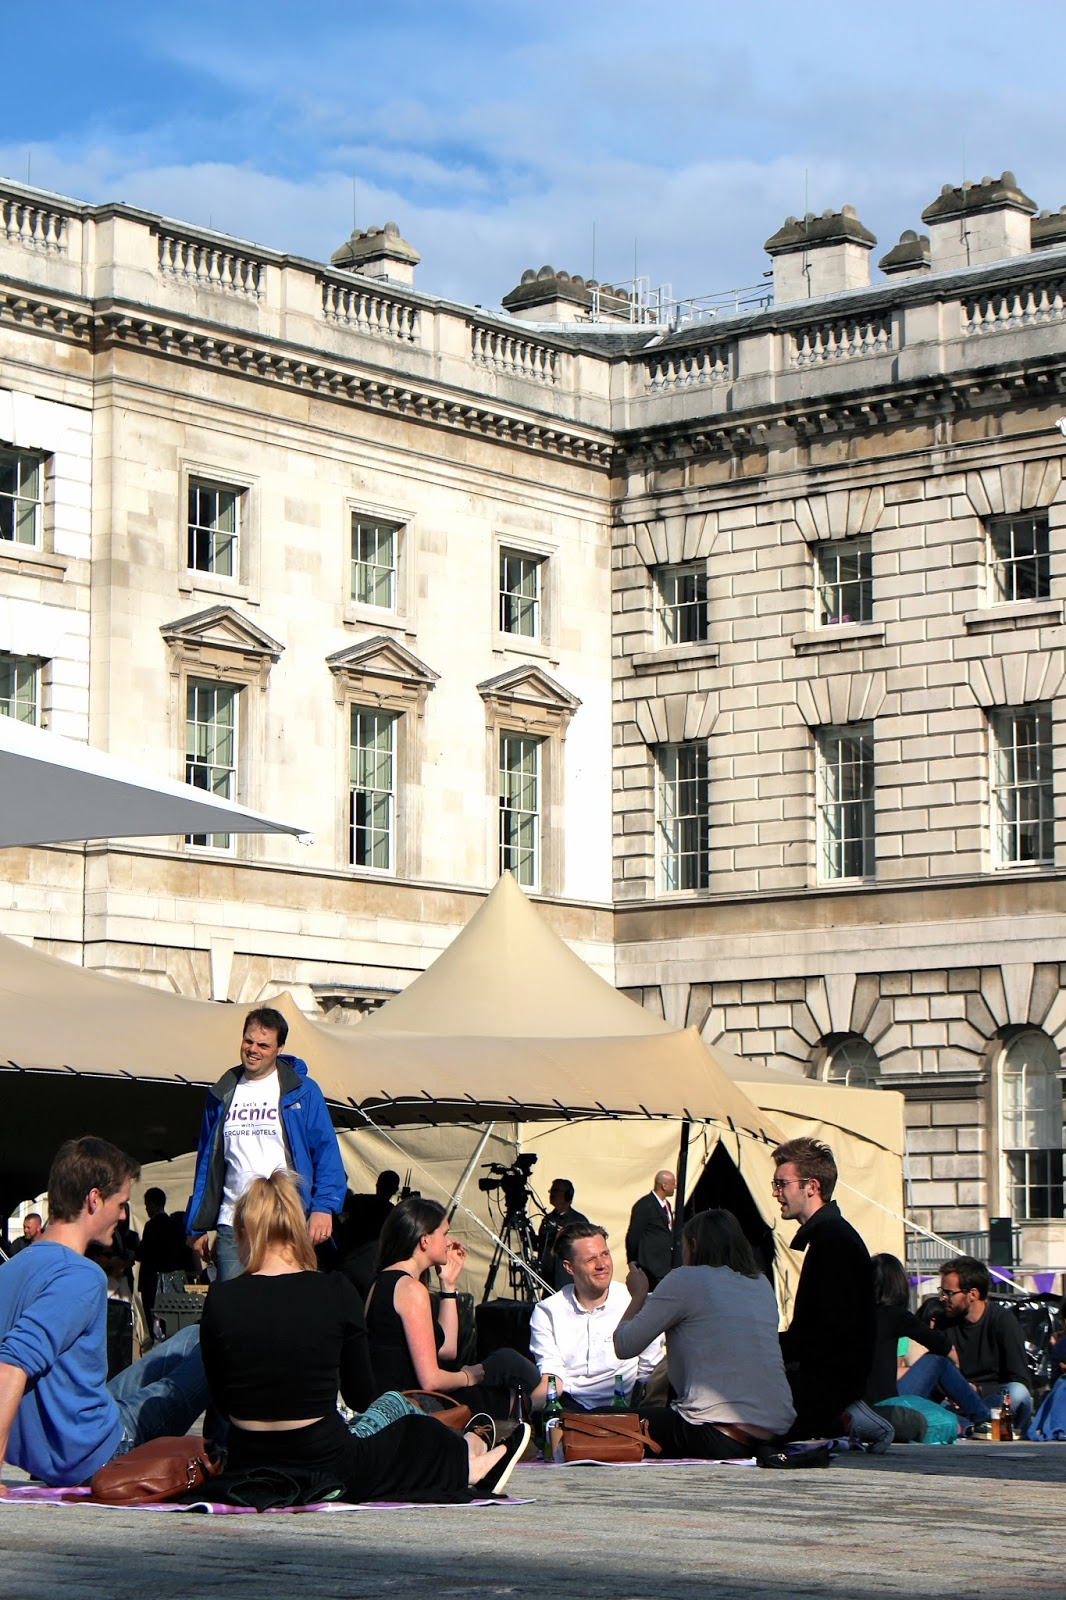 Somerset House #PicnicWithMercure event 2016